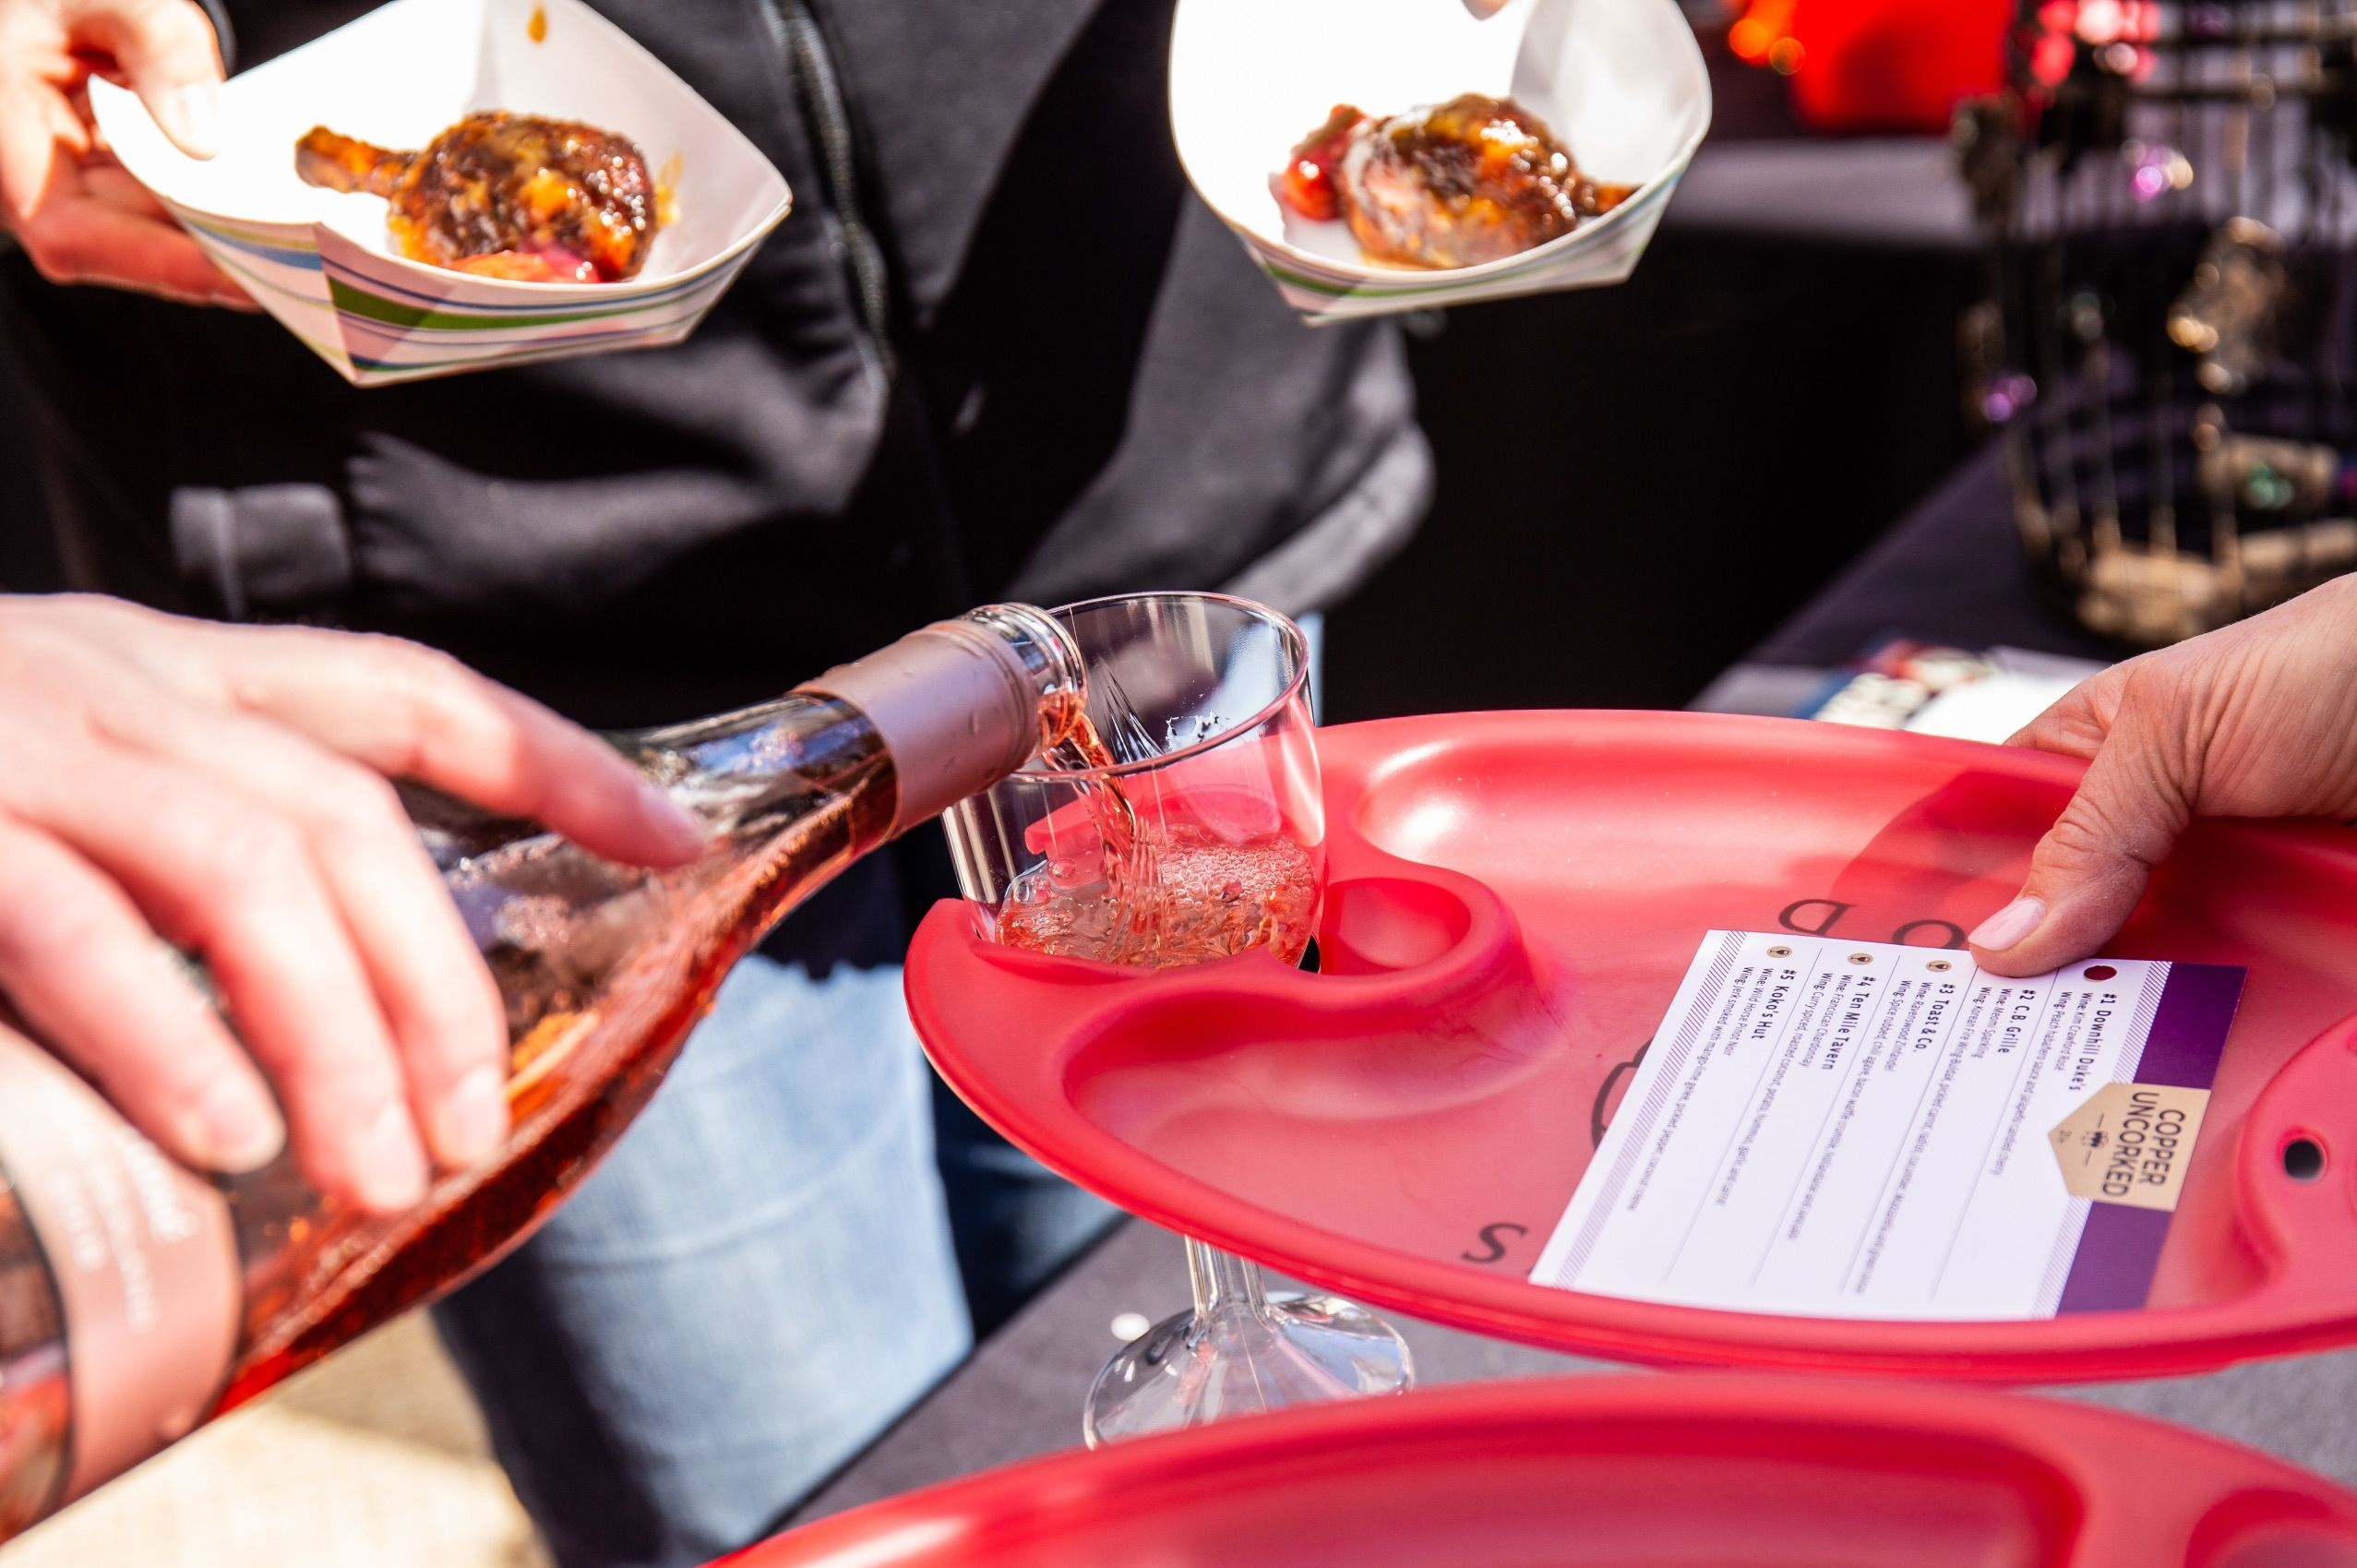 Events At Copper Copper Uncorked Wine And Wing Tasting And Cooking Competition At Copper Mountain In Mac And Cheese Fest Food Competition Cooking Competition